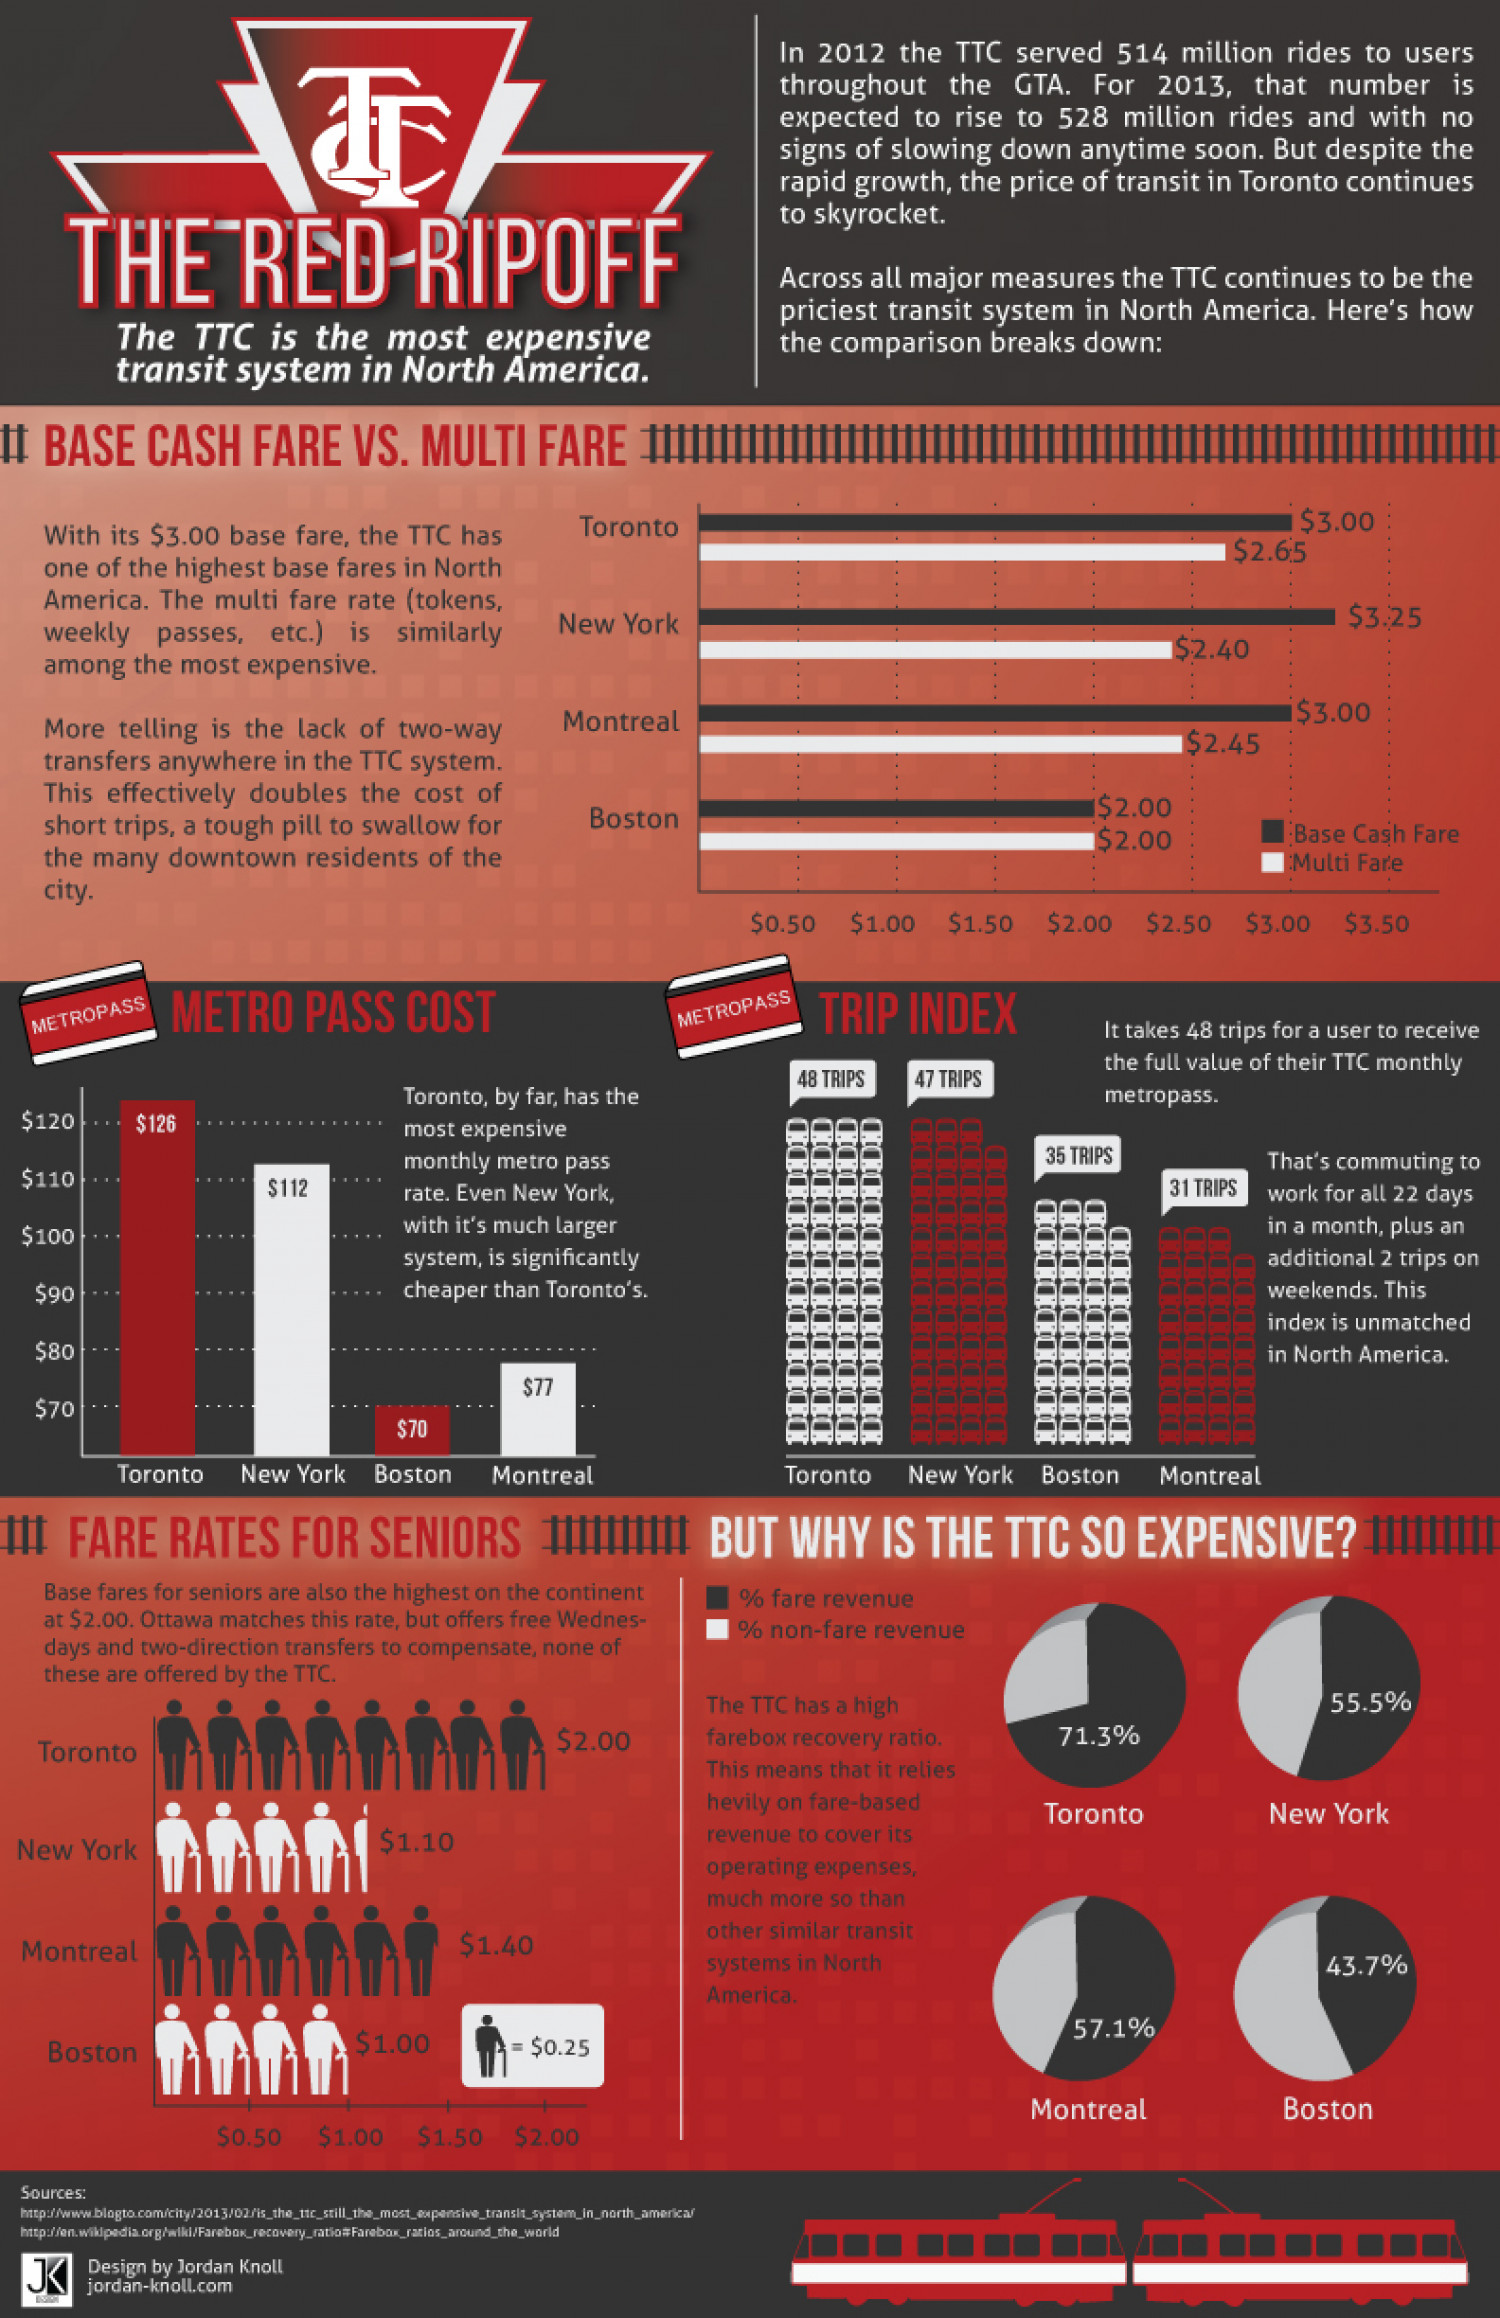 The Red Ripoff - The TTC is the most expensive transit system in North America Infographic